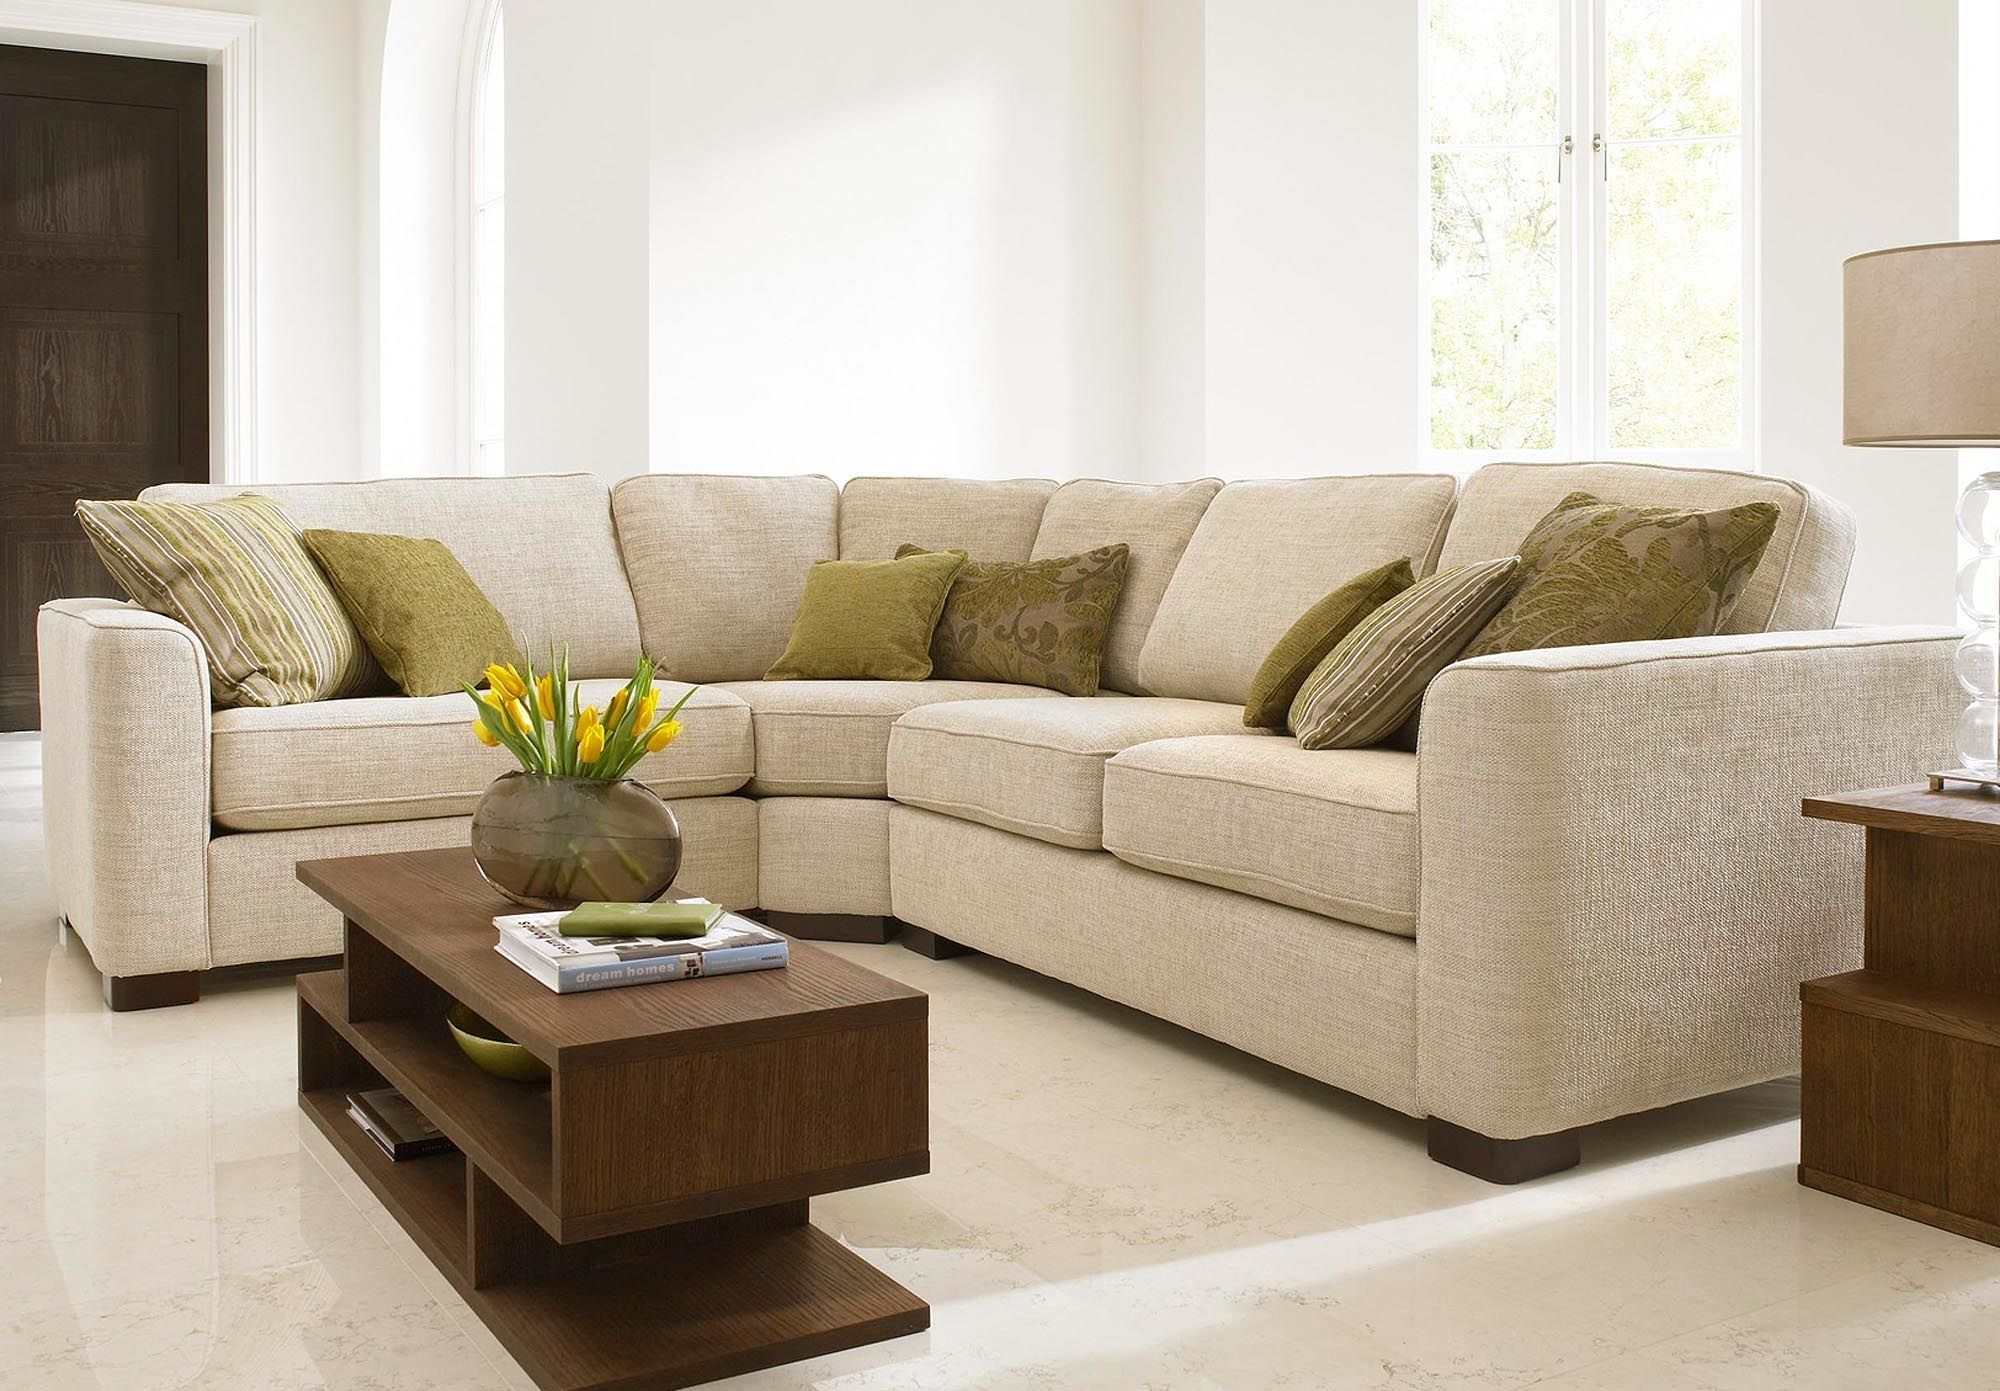 white leather sofa furniture village sofas for sale in houston rhf leatherlux corner